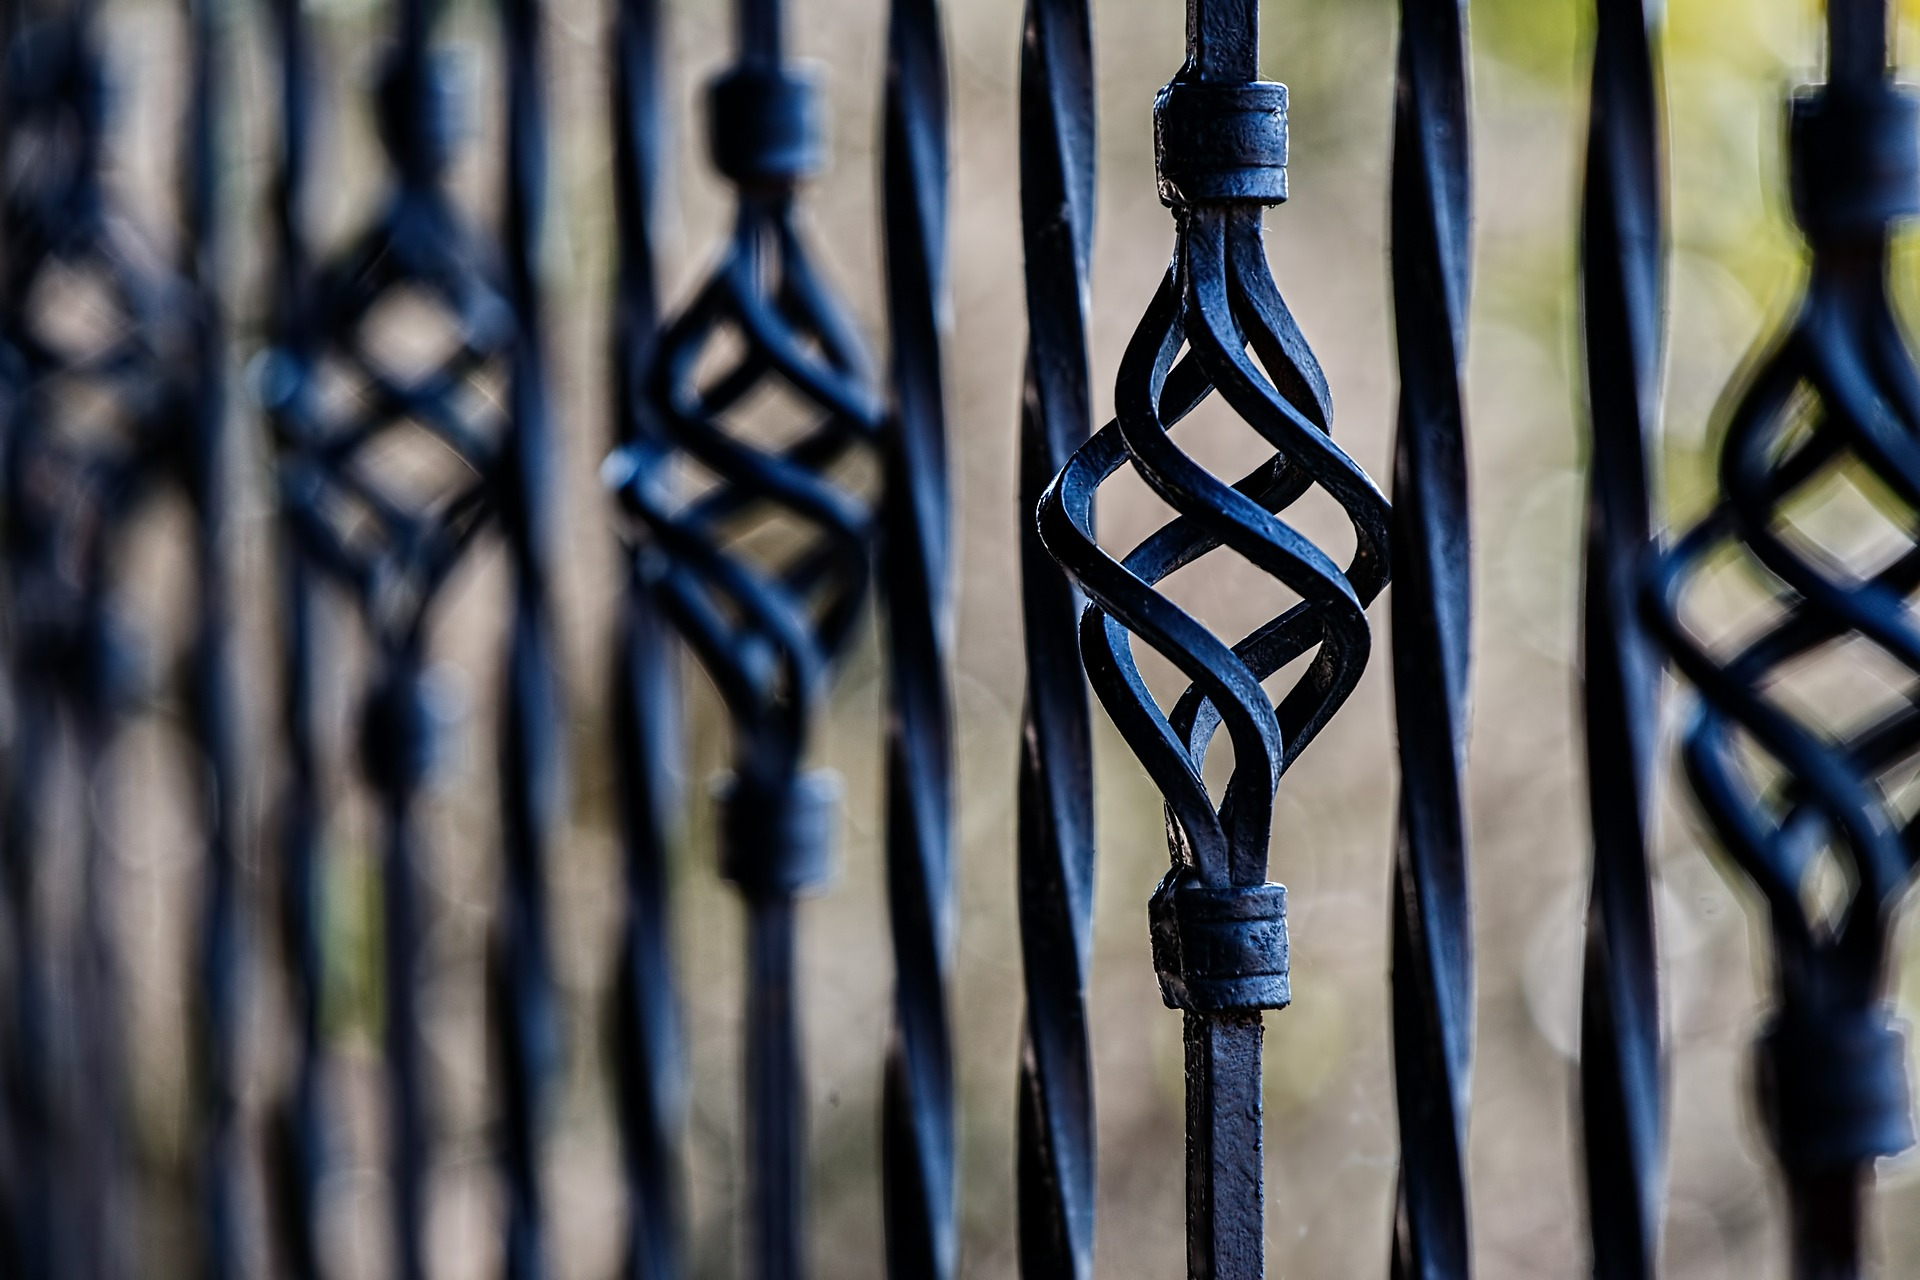 fence-450670_1920